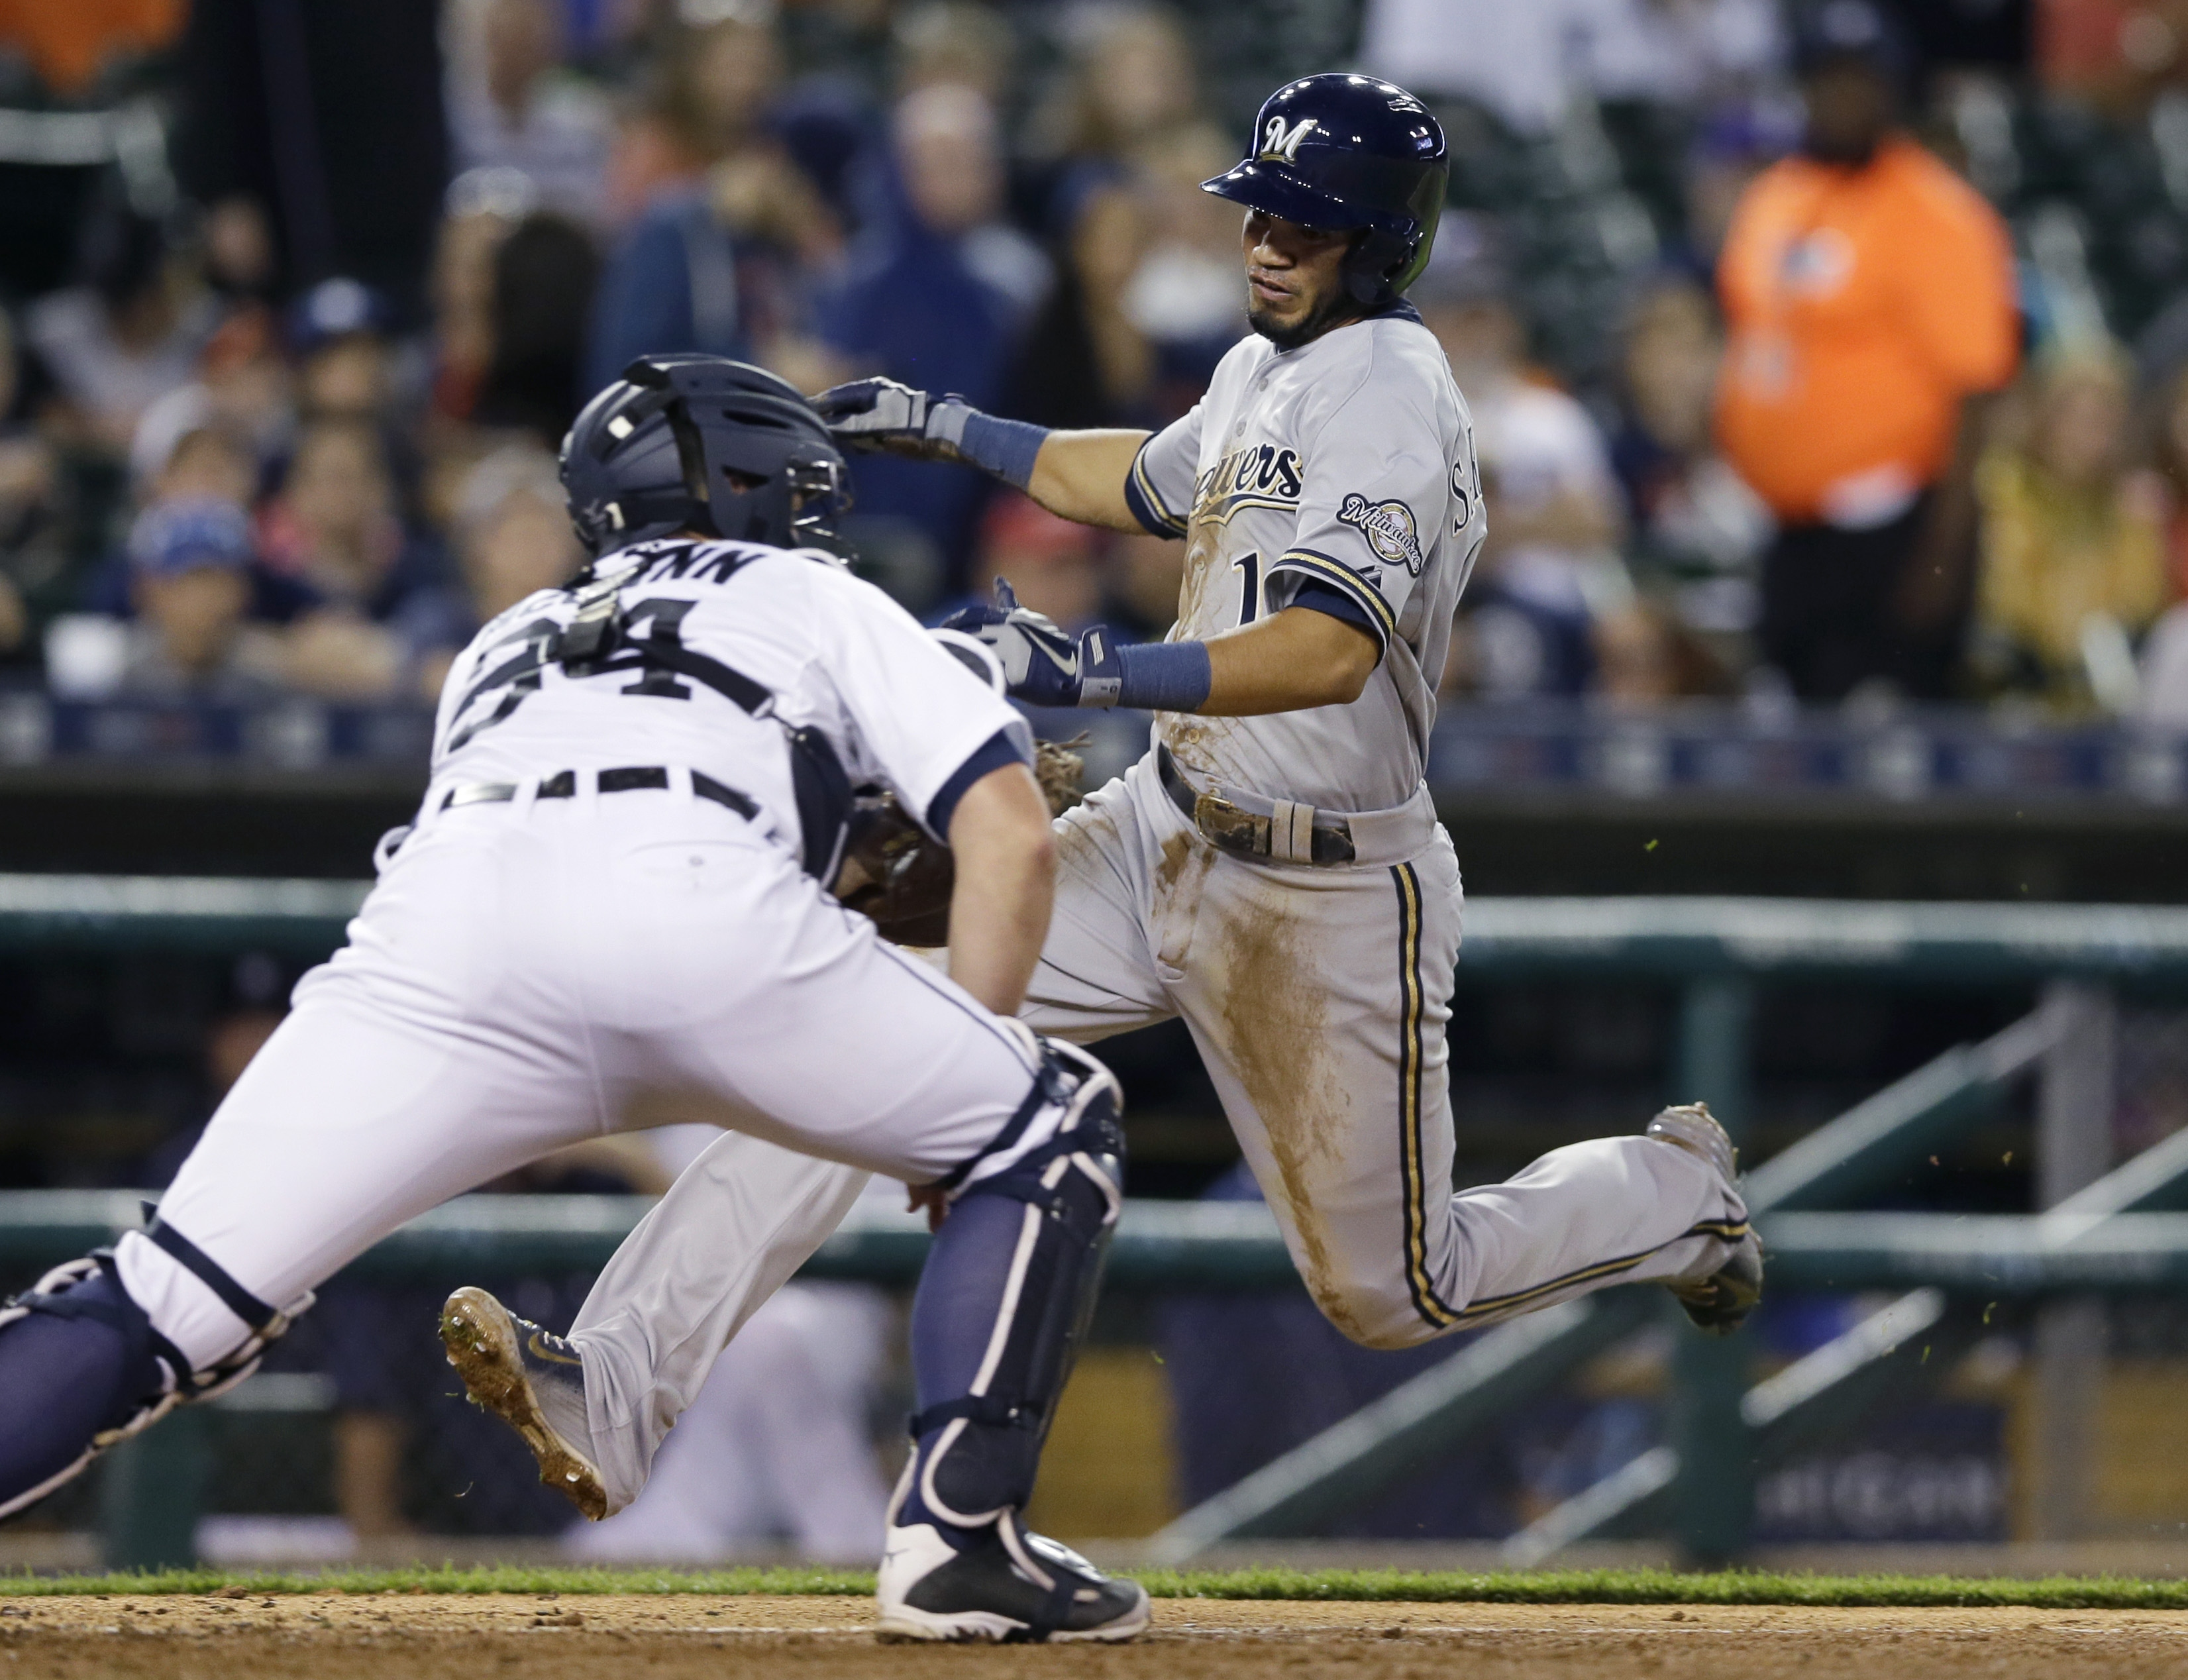 Milwaukee Brewers' Luis Sardinas beats the tag of Detroit Tigers catcher James McCann to score on a single by teammate Carlos Gomez during the seventh inning of an interleague baseball game, Monday, May 18, 2015, in Detroit. (AP Photo/Carlos Osorio)